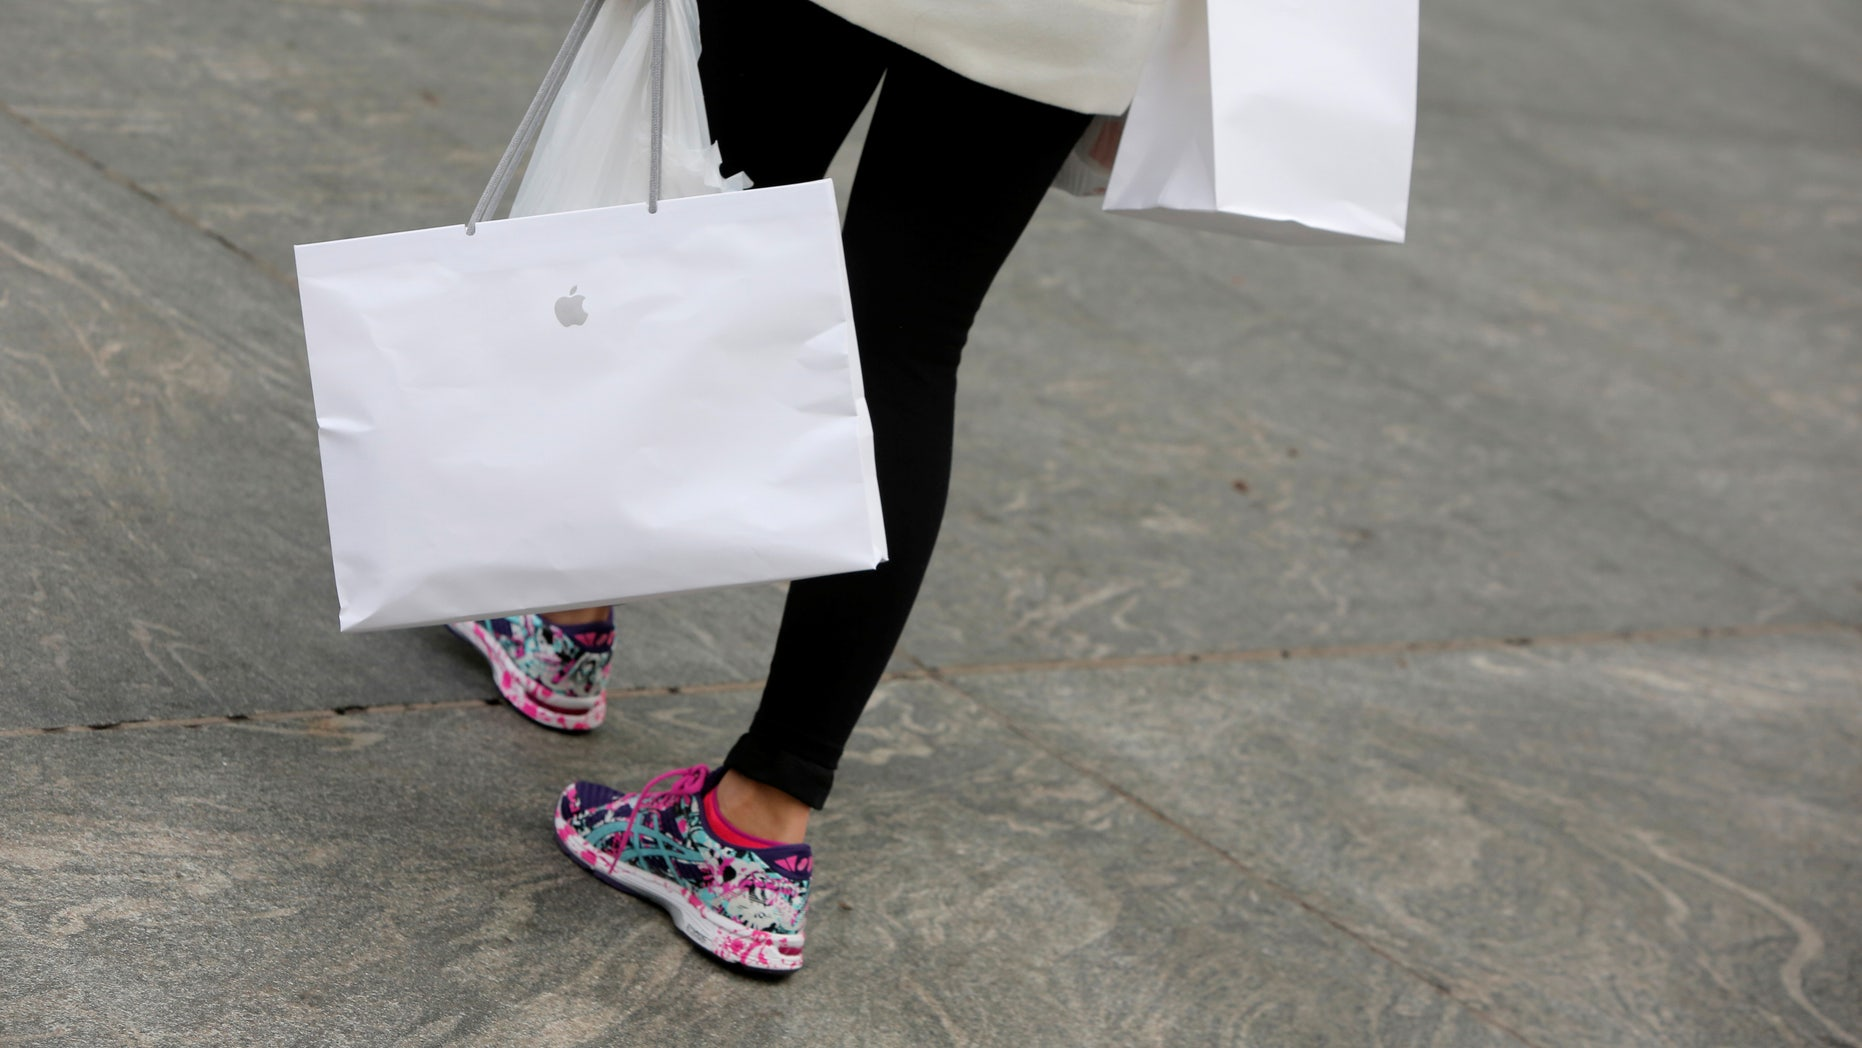 A woman carries purchases from the Apple Fifth Avenue store during Black Friday sales in Manhattan, New York, U.S., November 25, 2016. (REUTERS/Andrew Kelly)